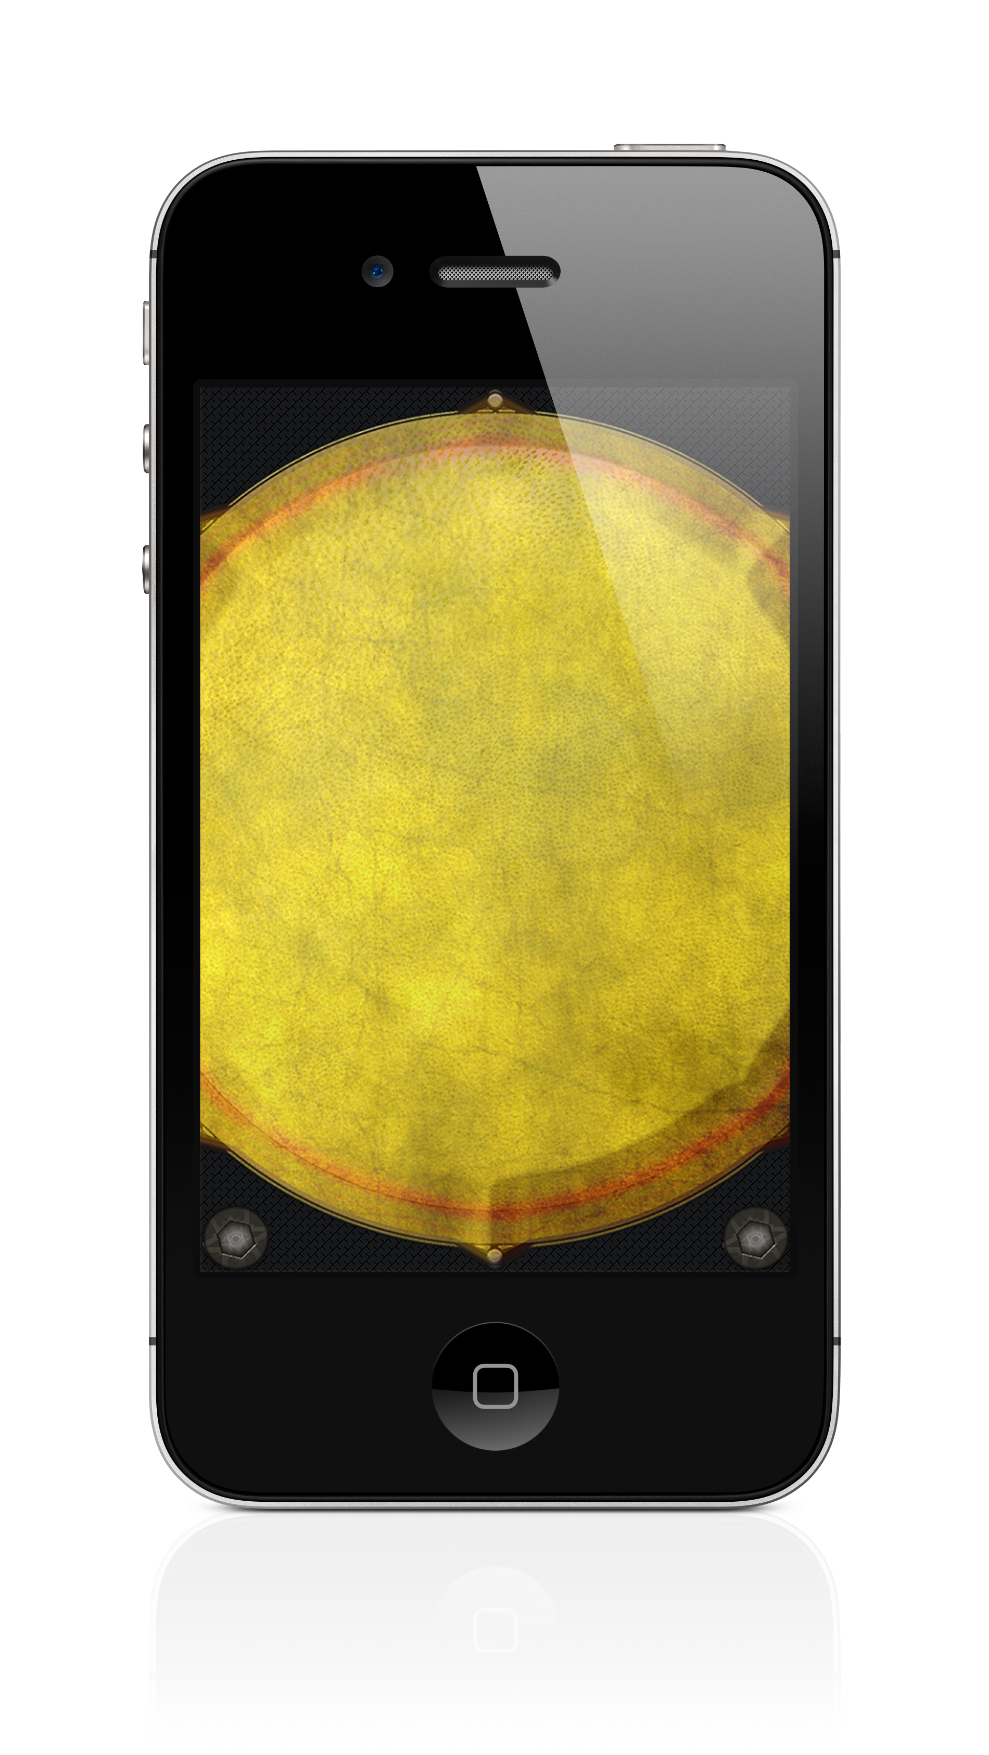 Djembe Drum iPhone Screenshot 1 of 2